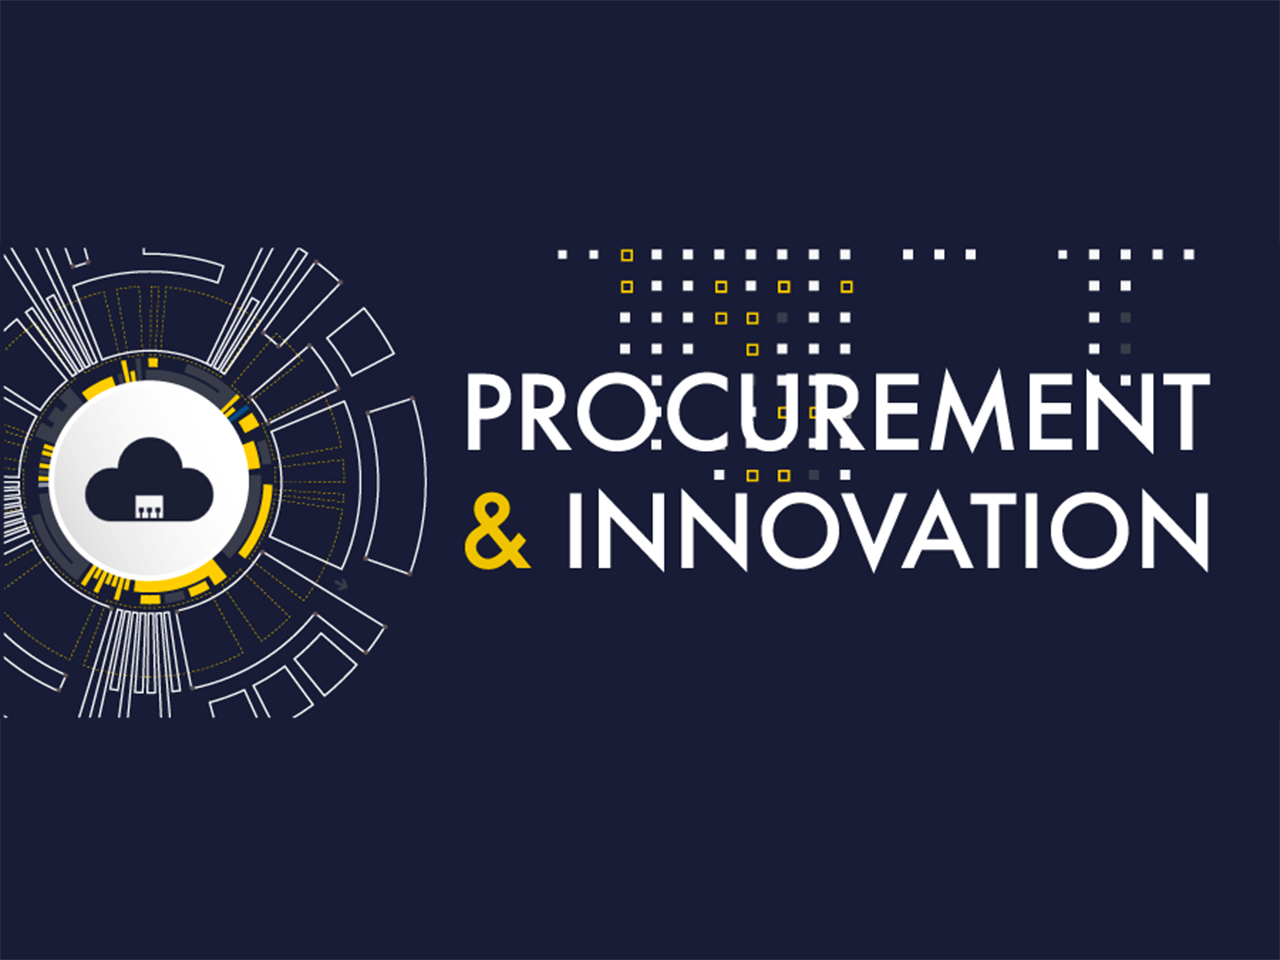 Procurement & Innovation